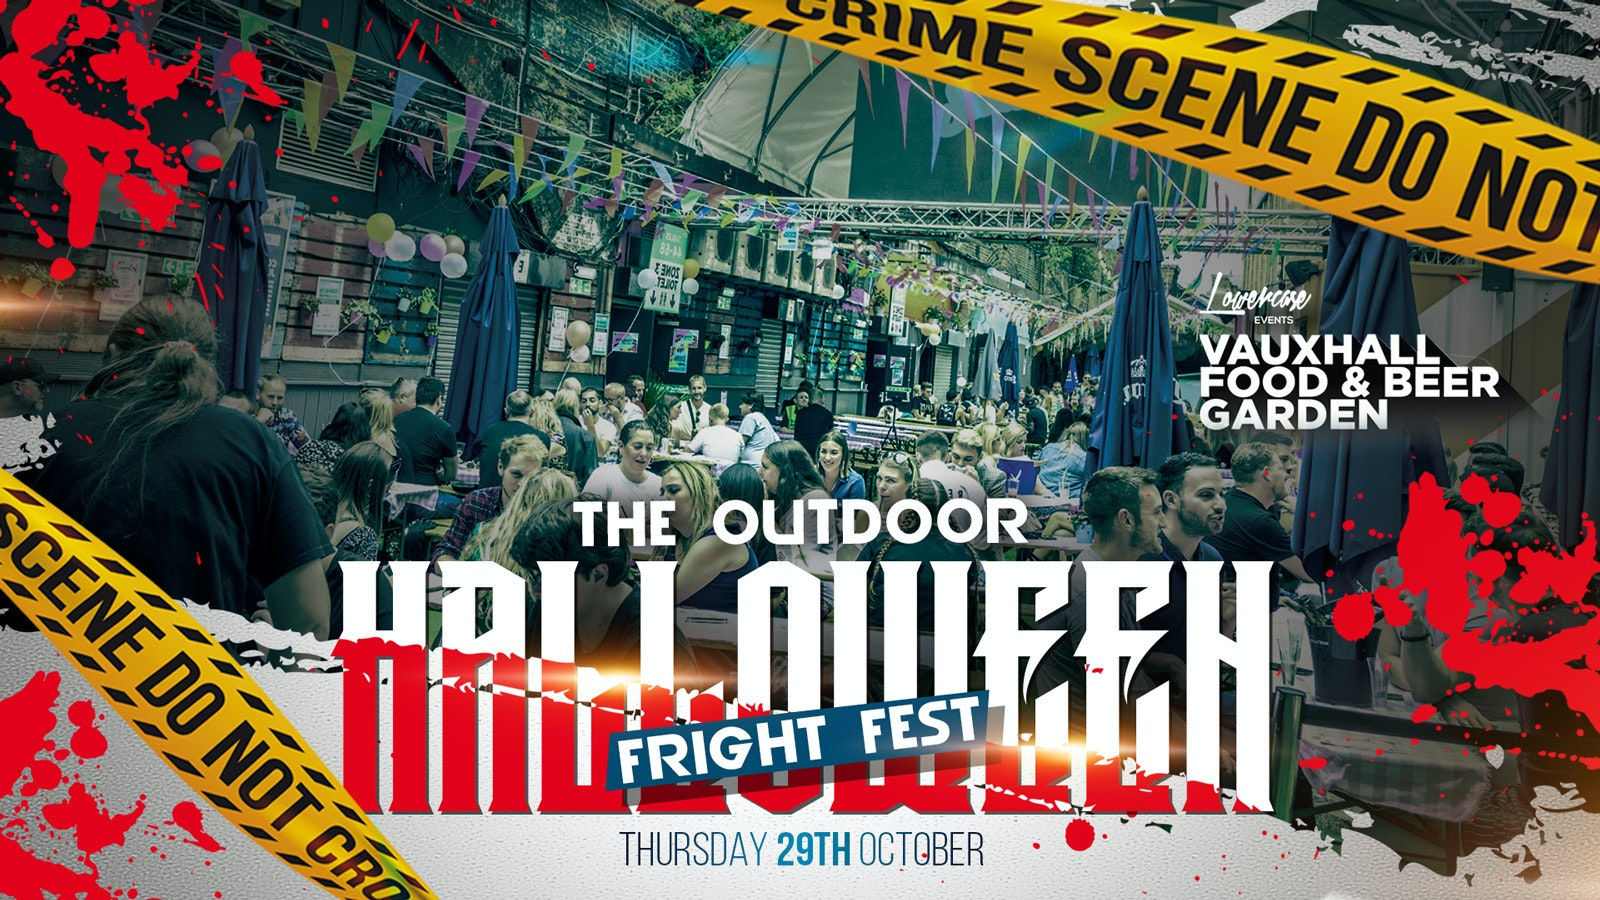 THE 2020 OUTDOOR HALLOWEEN HORROR FEST! THIS EVENT WILL SELL OUT!